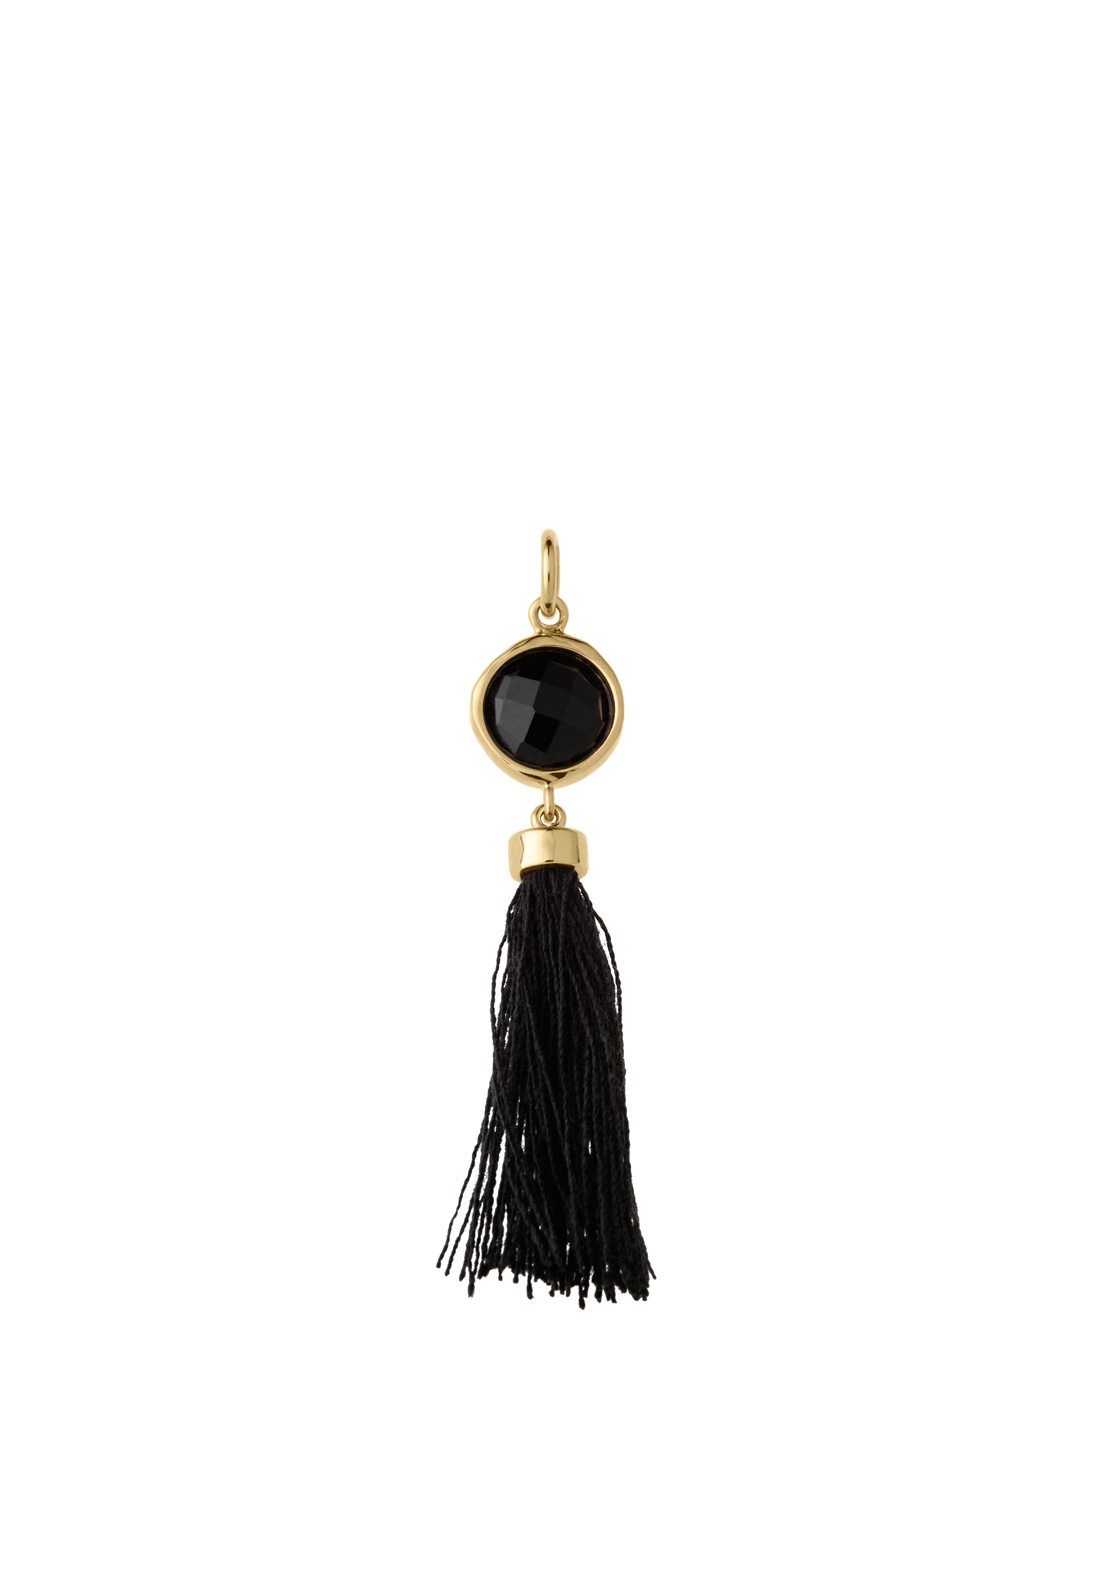 Kirstin Ash Black Cord Tassel Necklace Charm, Gold Plated